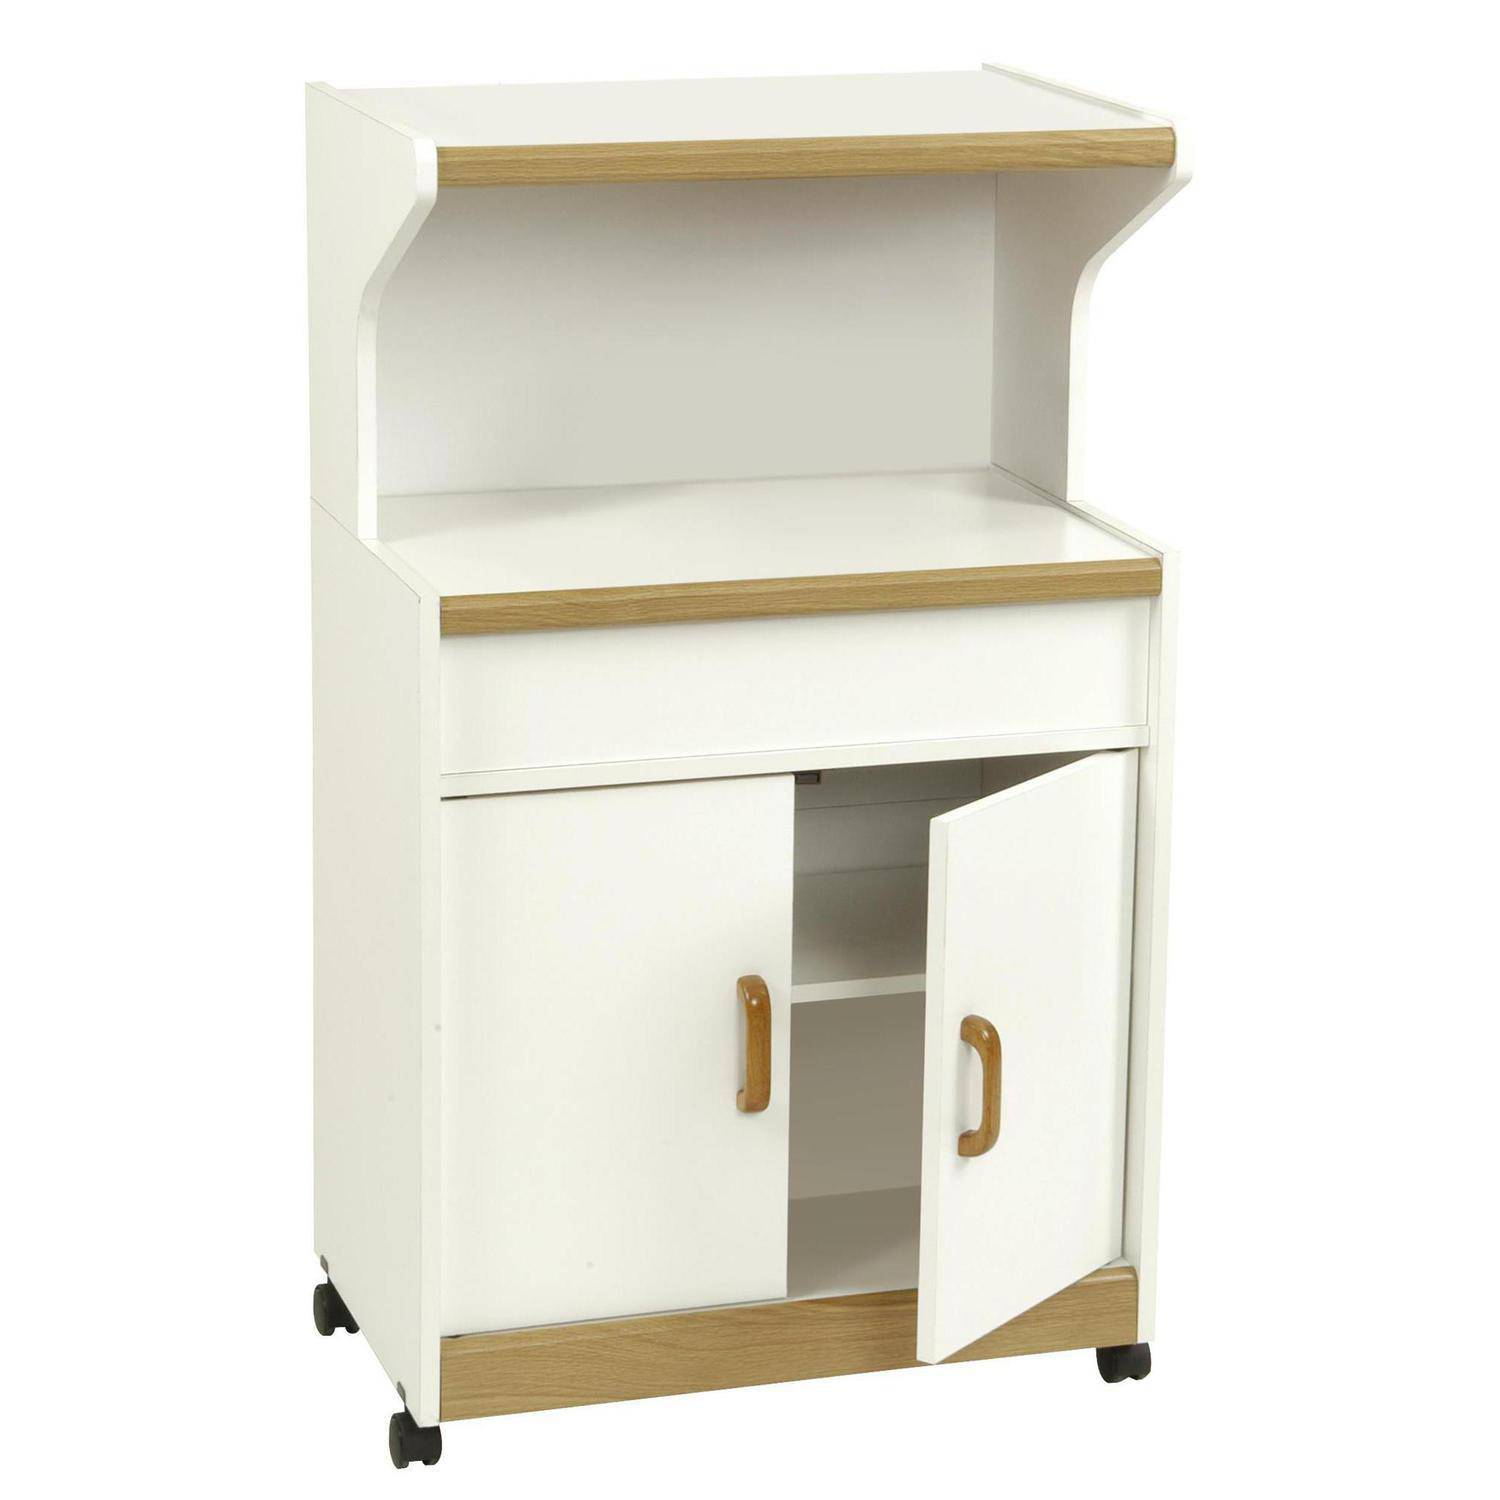 Microwave Furniture Cabinet Microwave Cabinet With Shelves White Walmartcom